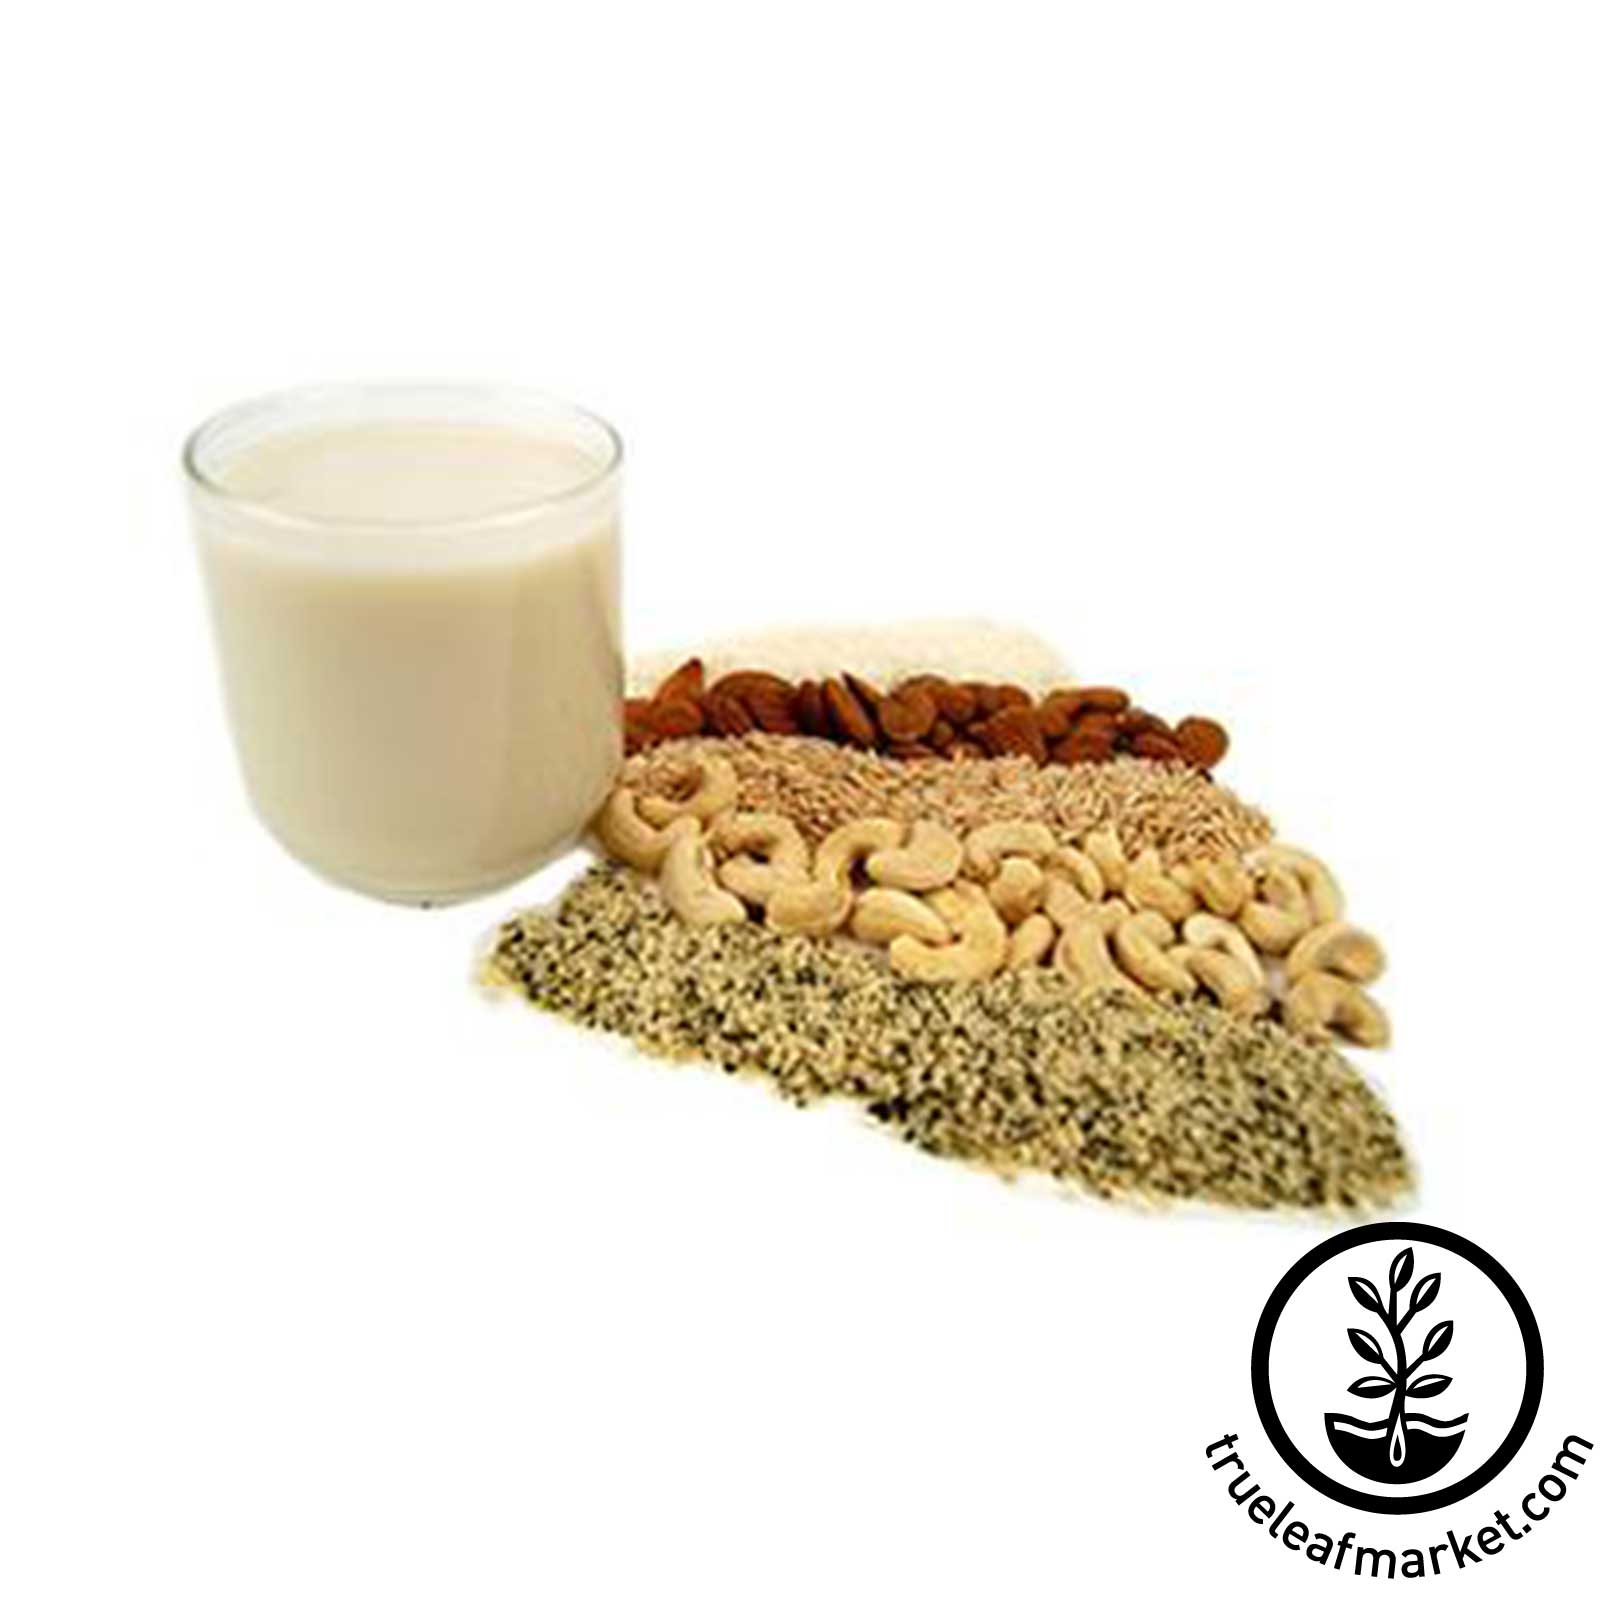 Organic Nut Milk Kit